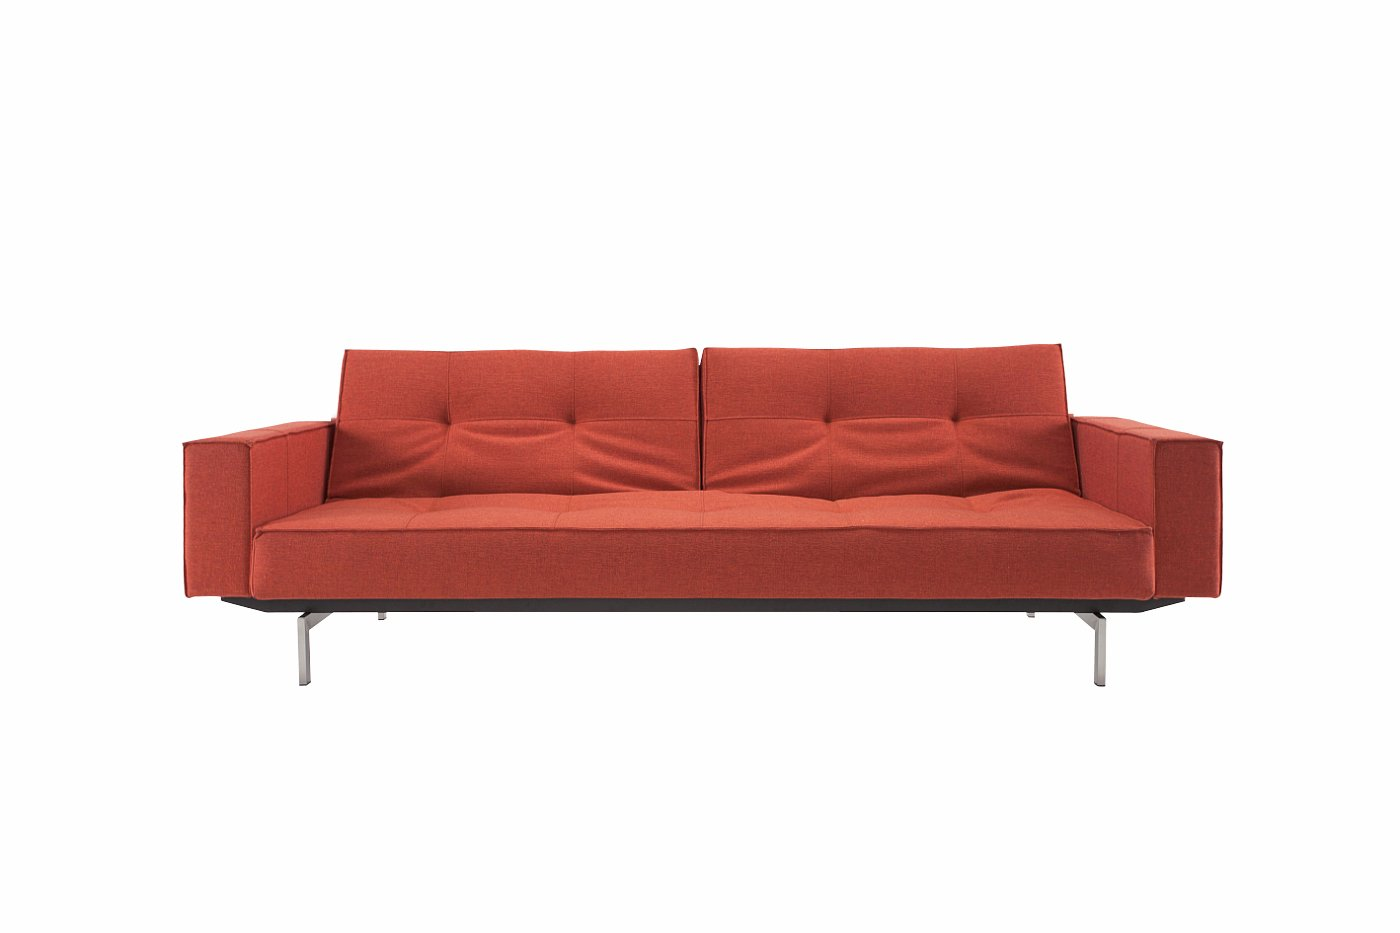 how to clean fabric sofa arms bed and loveseat combo splitback with stainless steel legs the